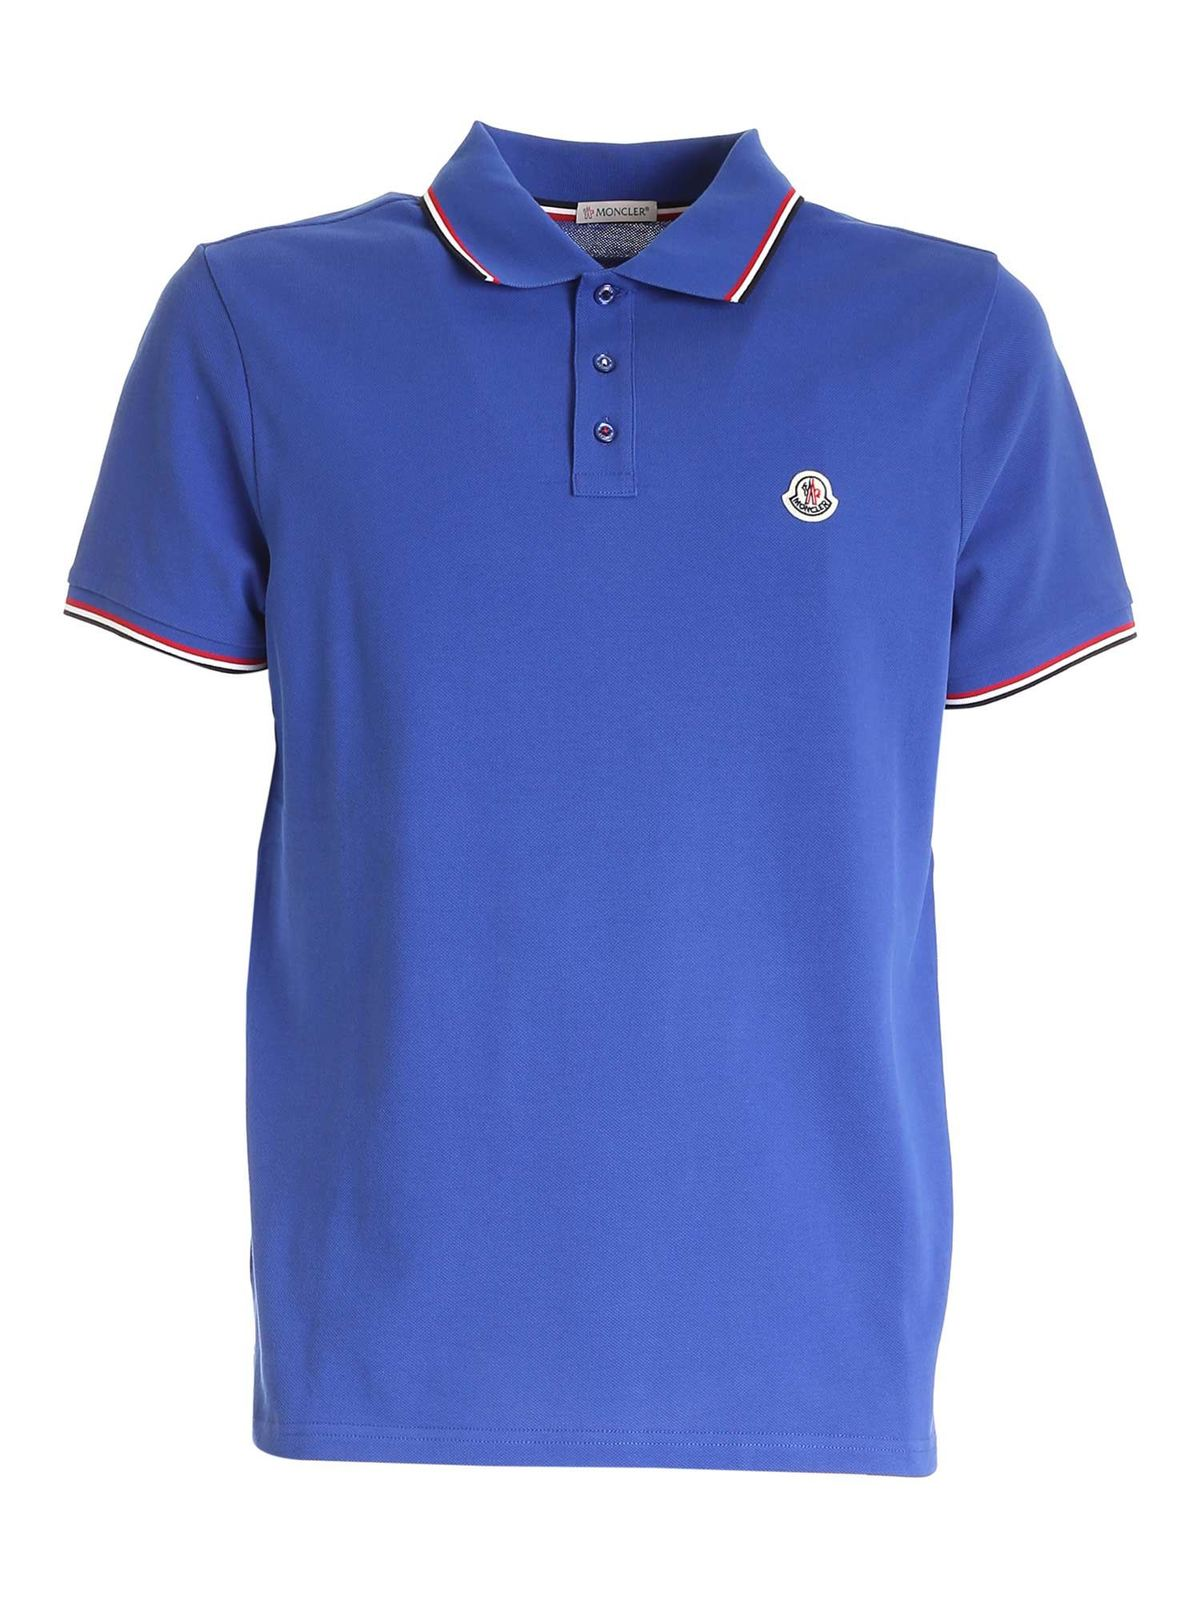 Moncler LOGO PATCH POLO SHIRT IN BLUE